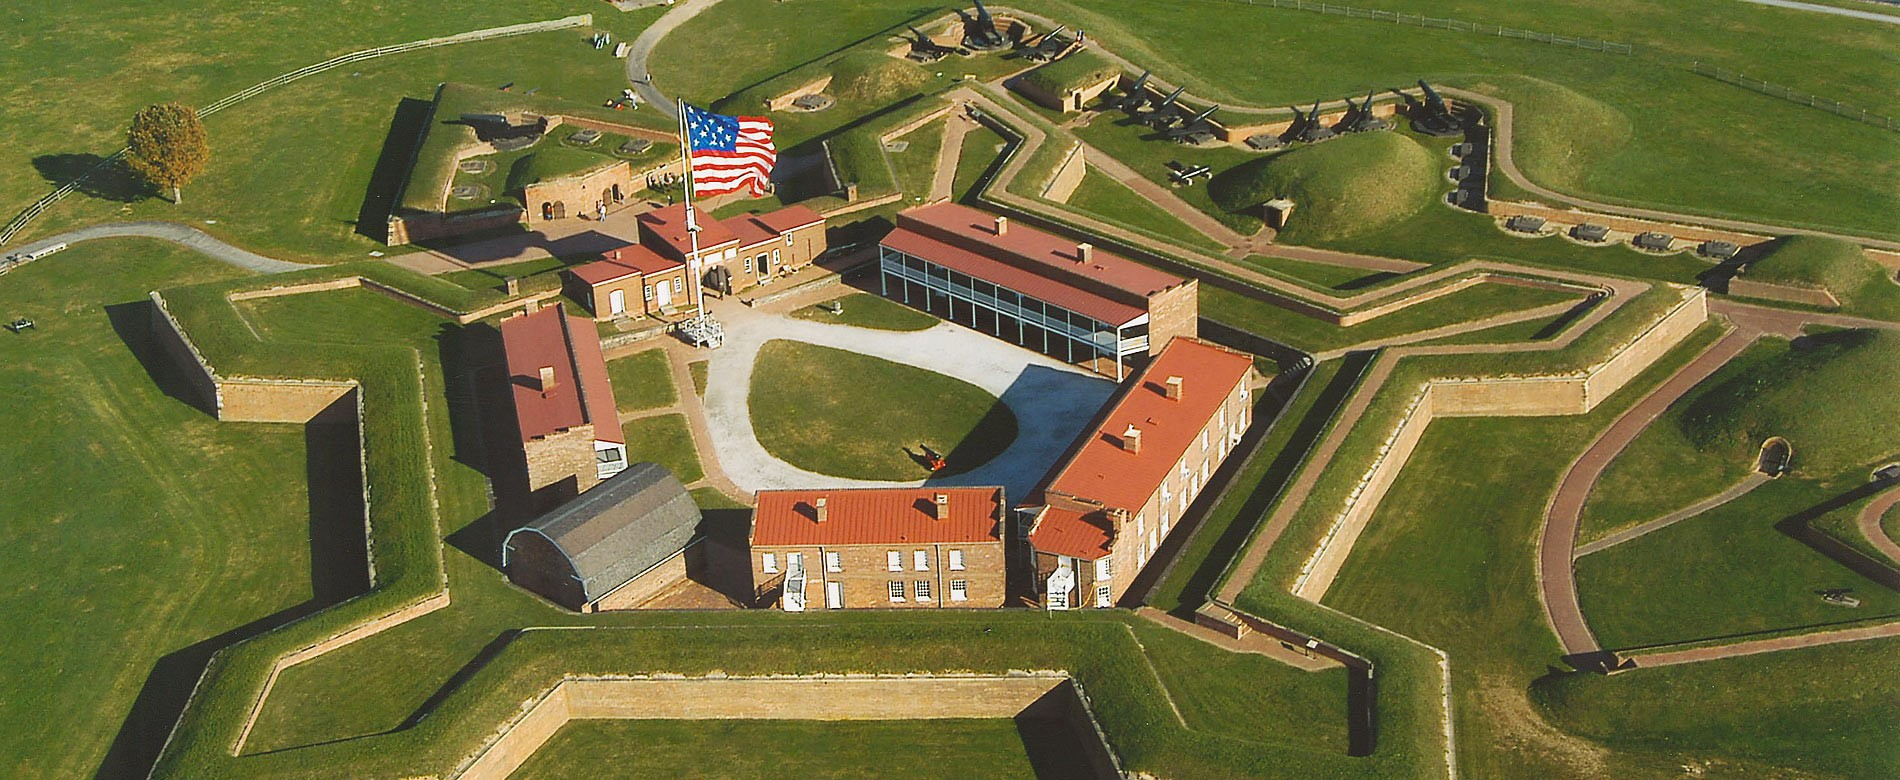 Aerial view of the Star Spangled Banner Flag Waving Over Fort McHenry